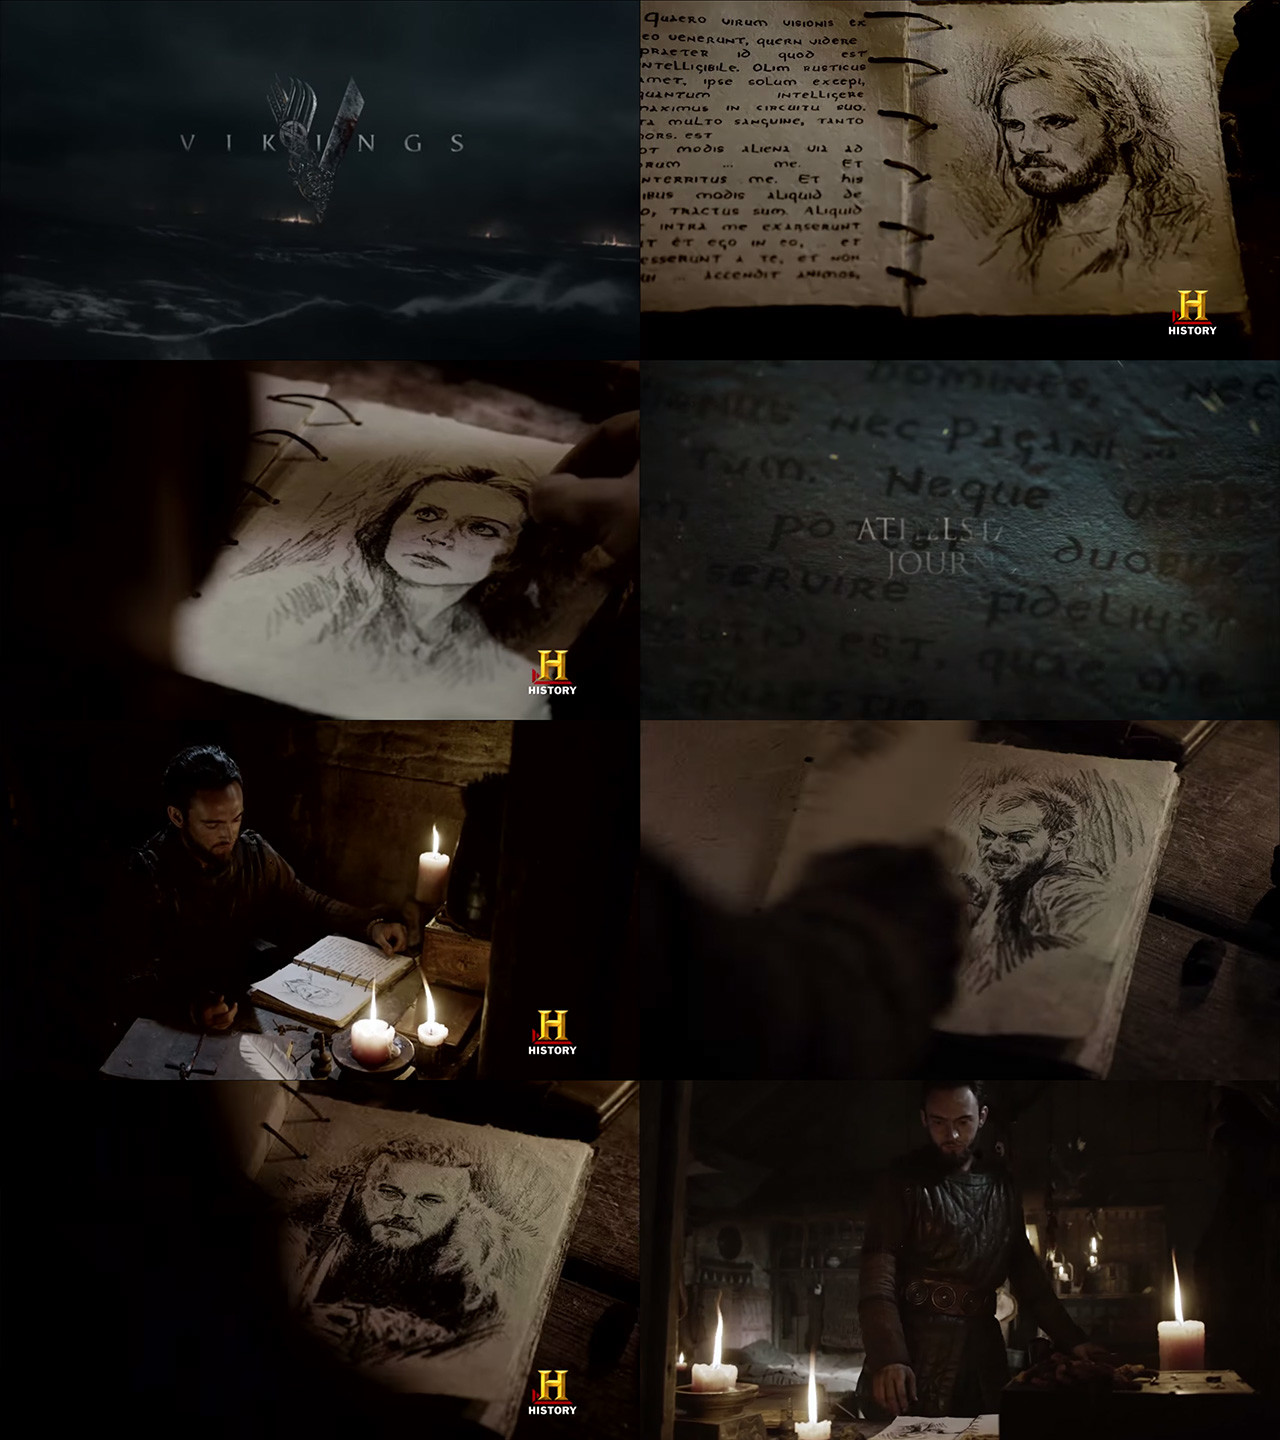 Athelstan's Journal